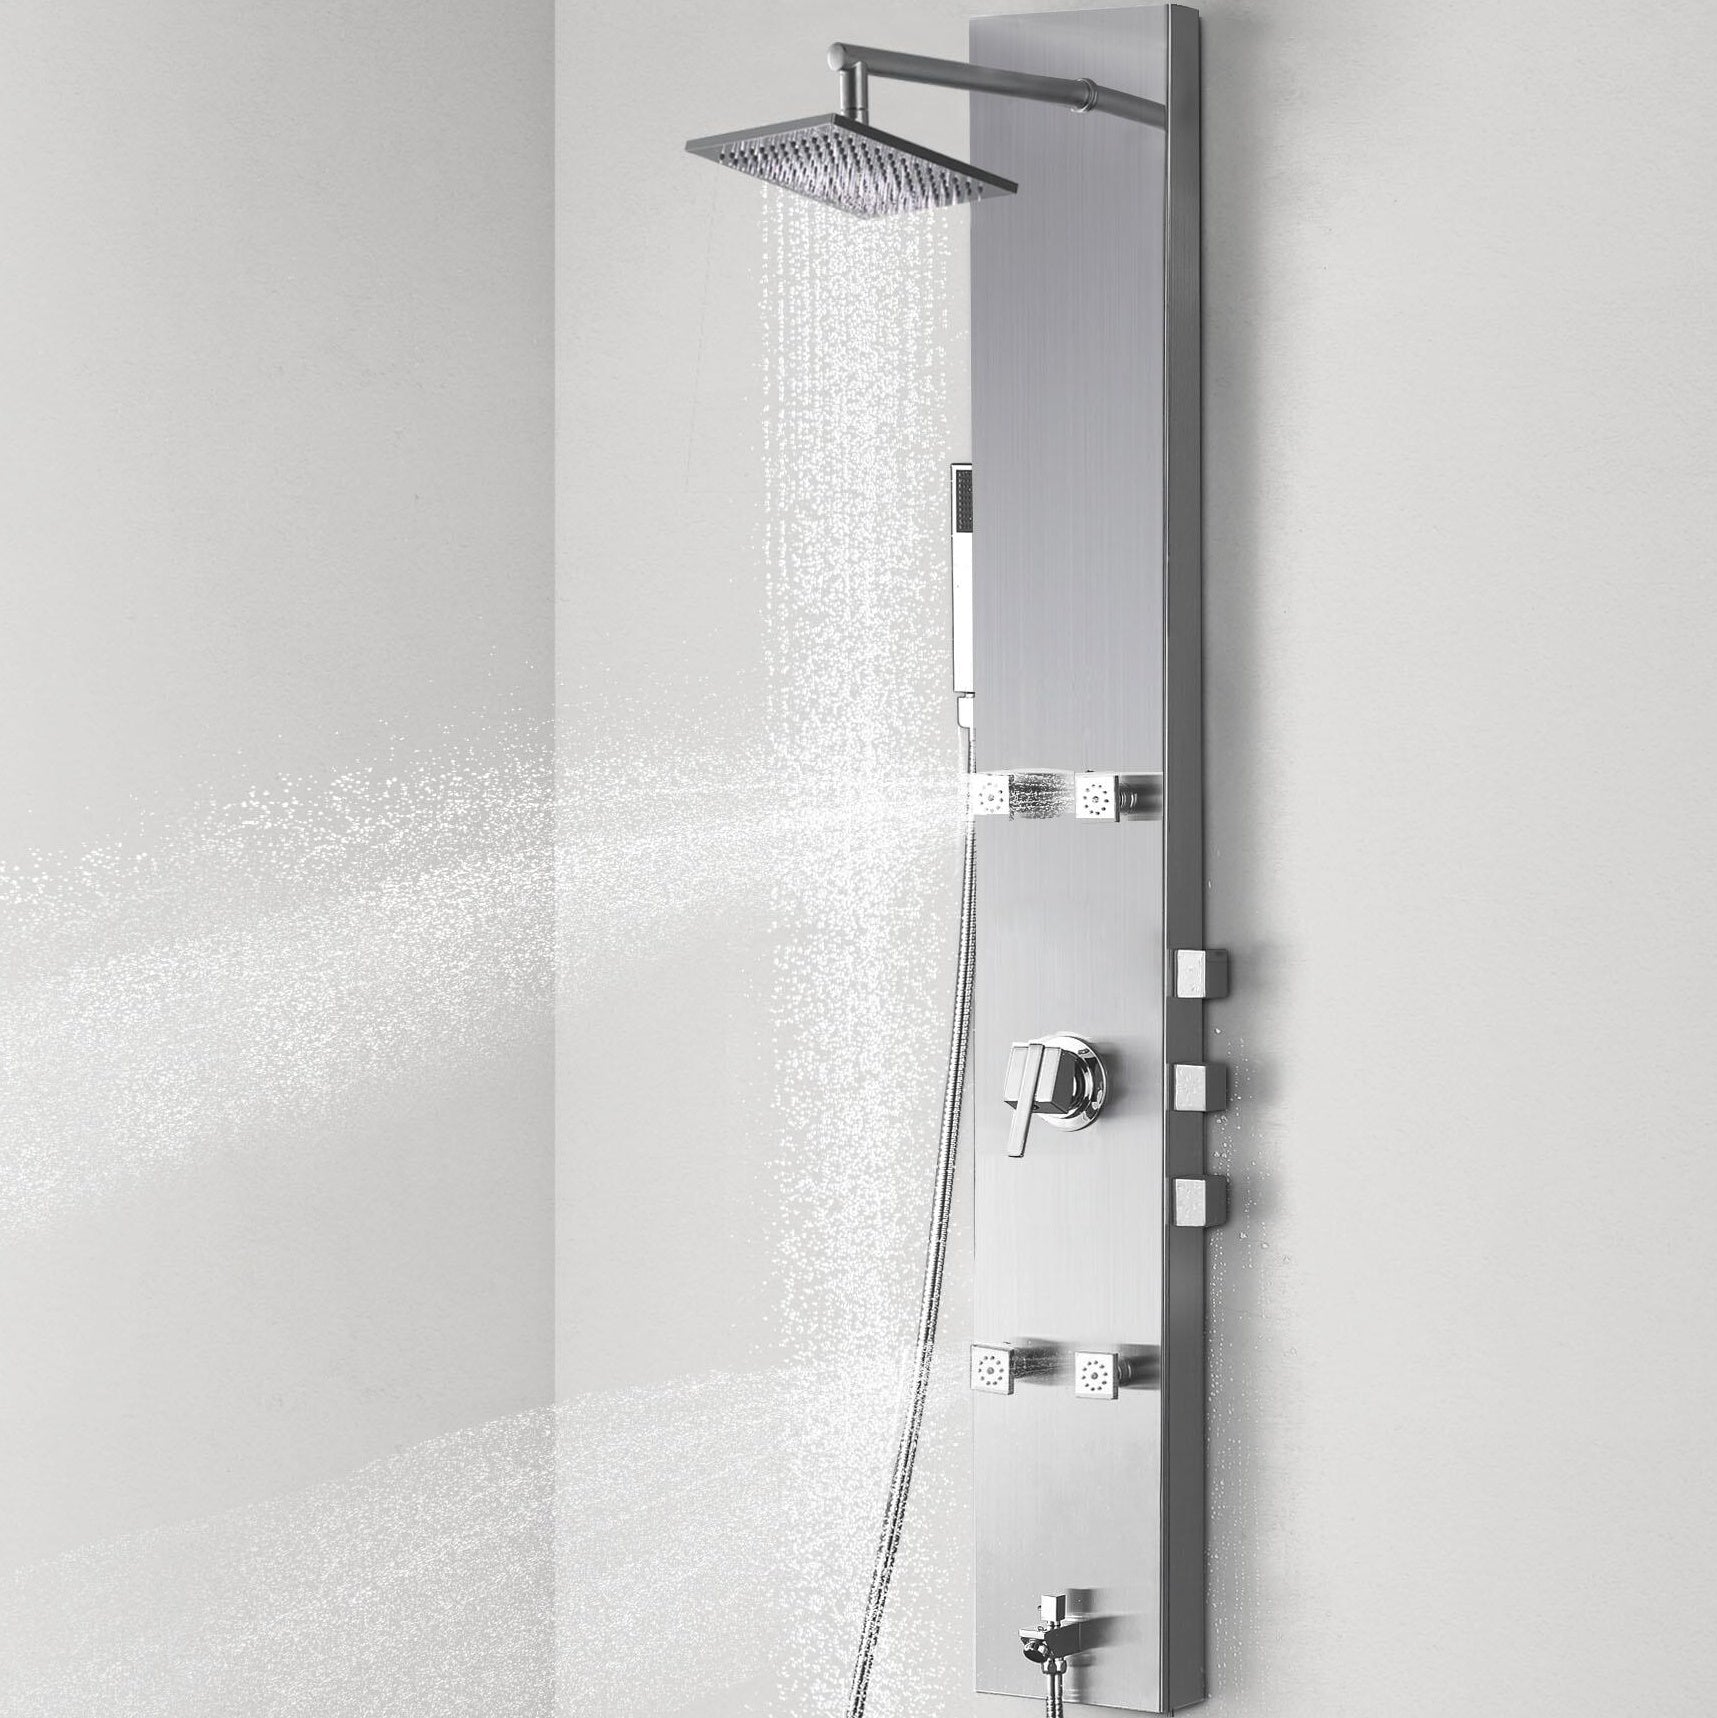 http://www.amazon.com/Vantory-VS056-1-Stainless-Rainfall-Handheld/dp/B01EZJH72K/ref=sr_1_1?ie=UTF8&keywords=shower+panel